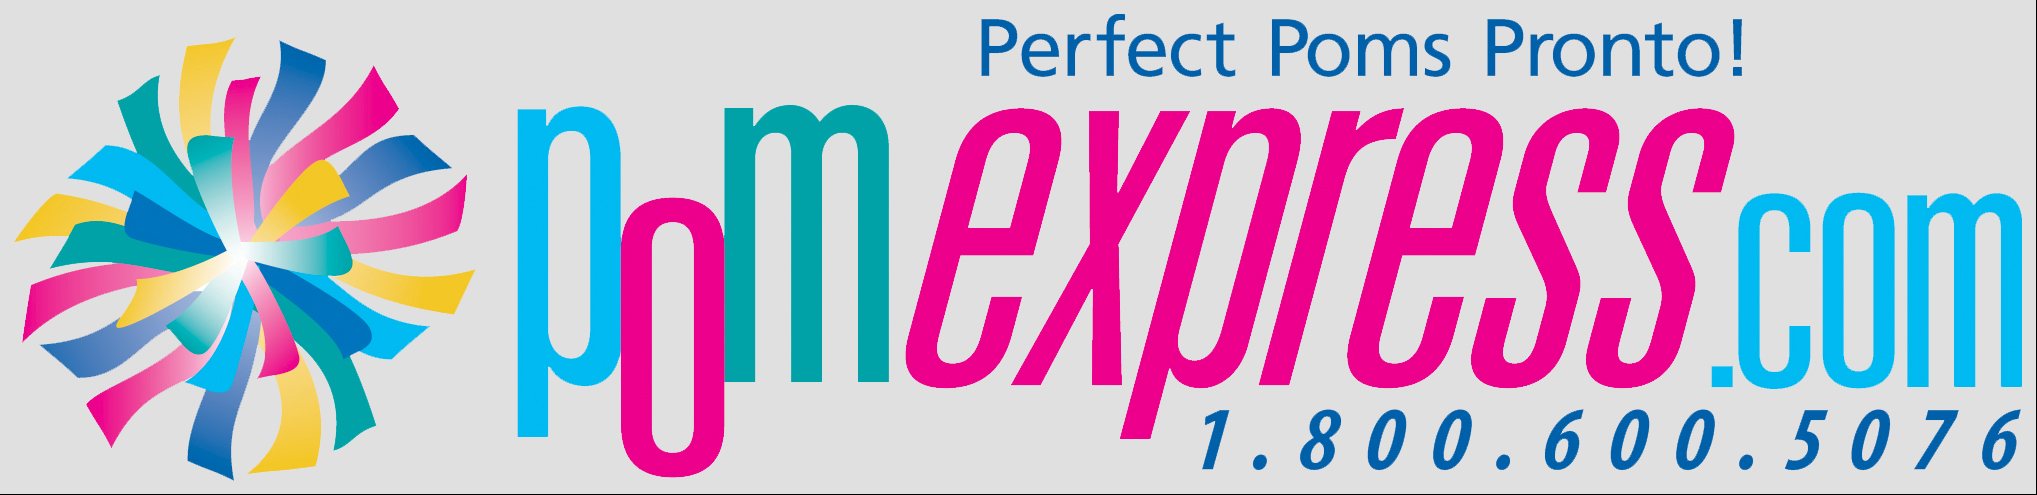 pom express logo with e0e0e0 background